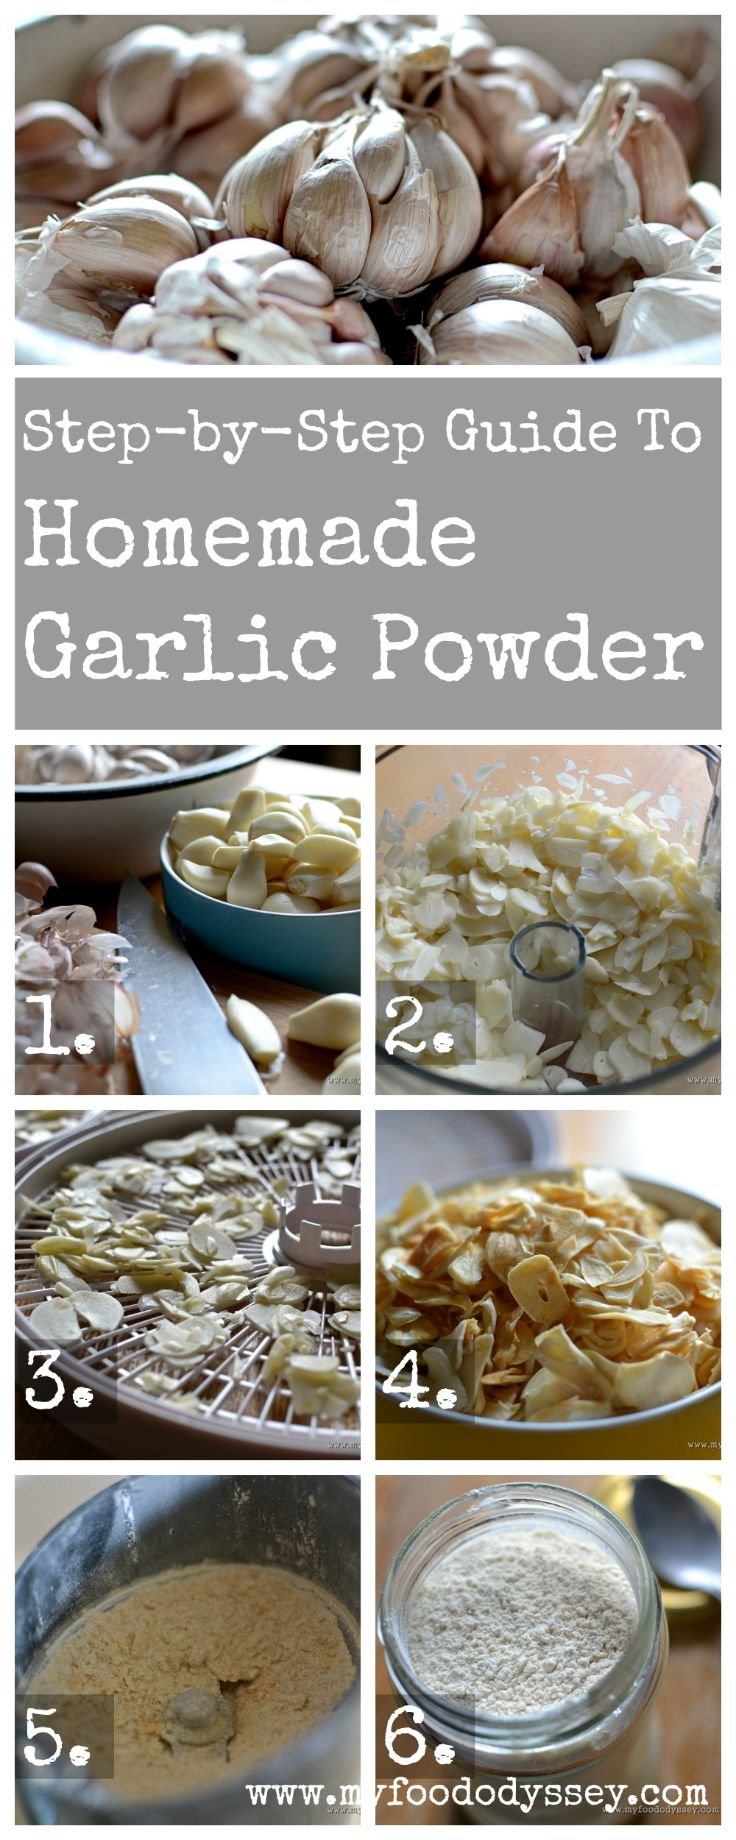 Step-by-step guide to making homemade garlic powder. So easy and so versatile!                                                                                                                                                                                 More